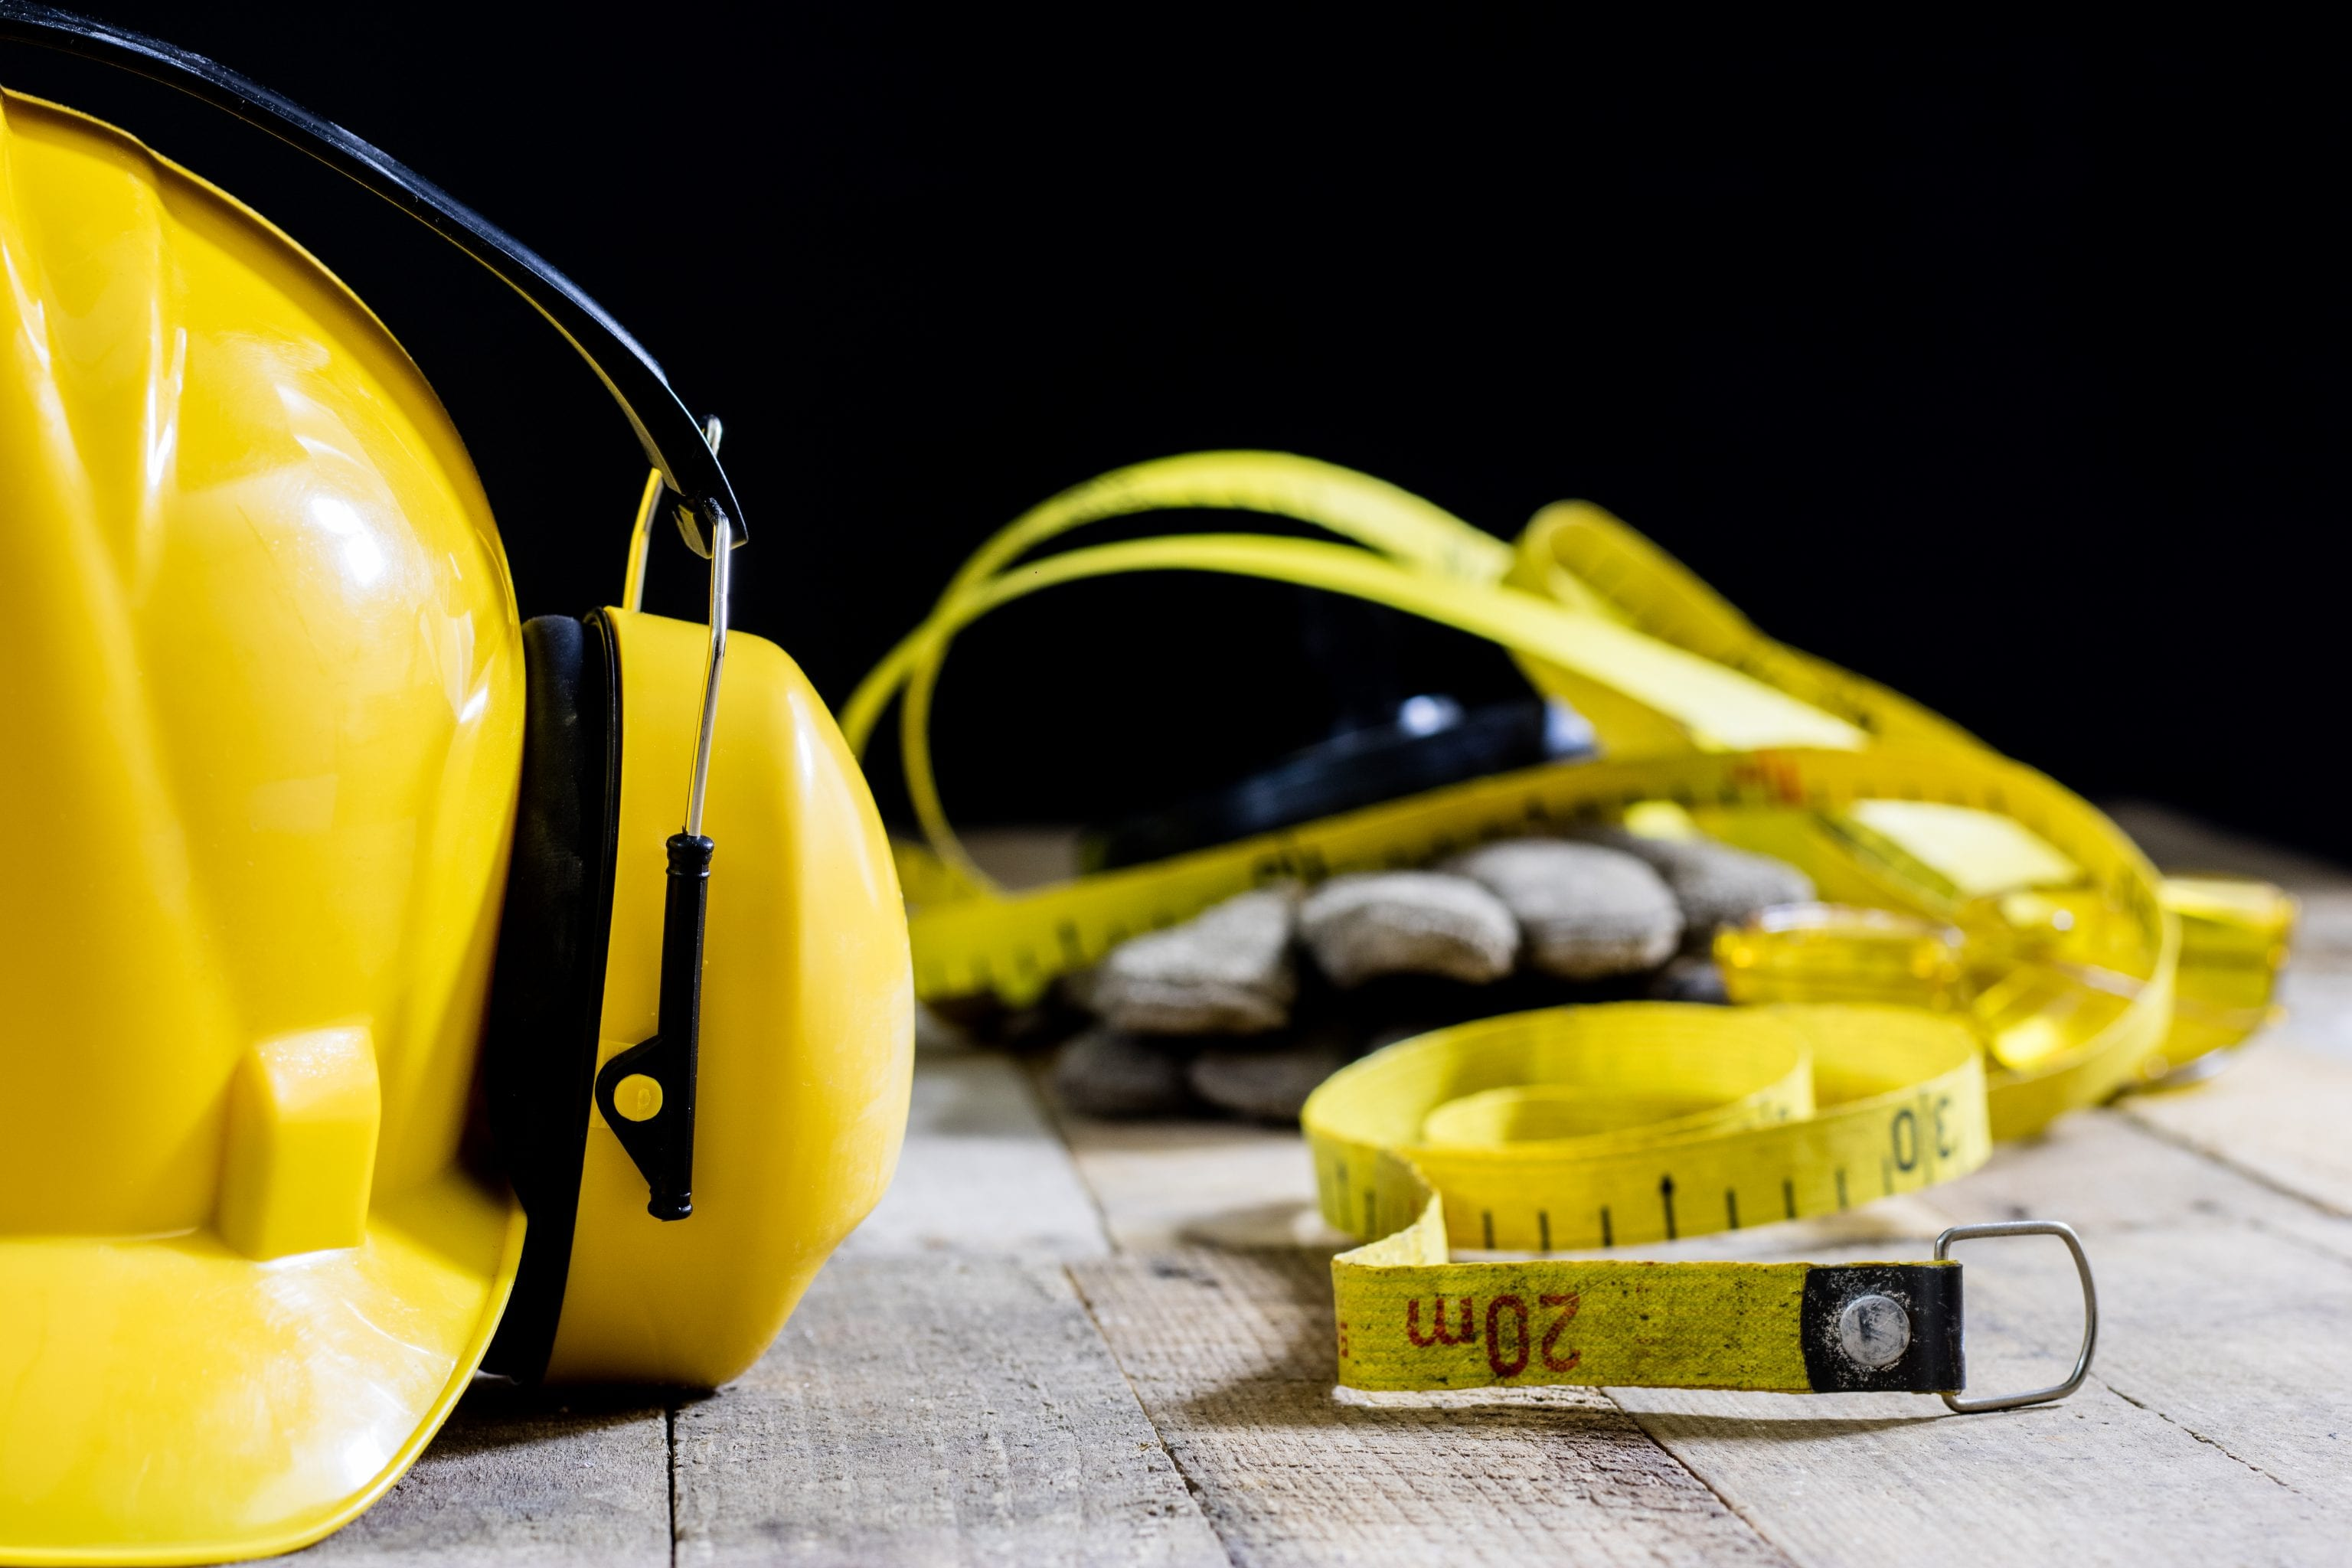 yellow ear protectors resting on wooden table with carpentry tools